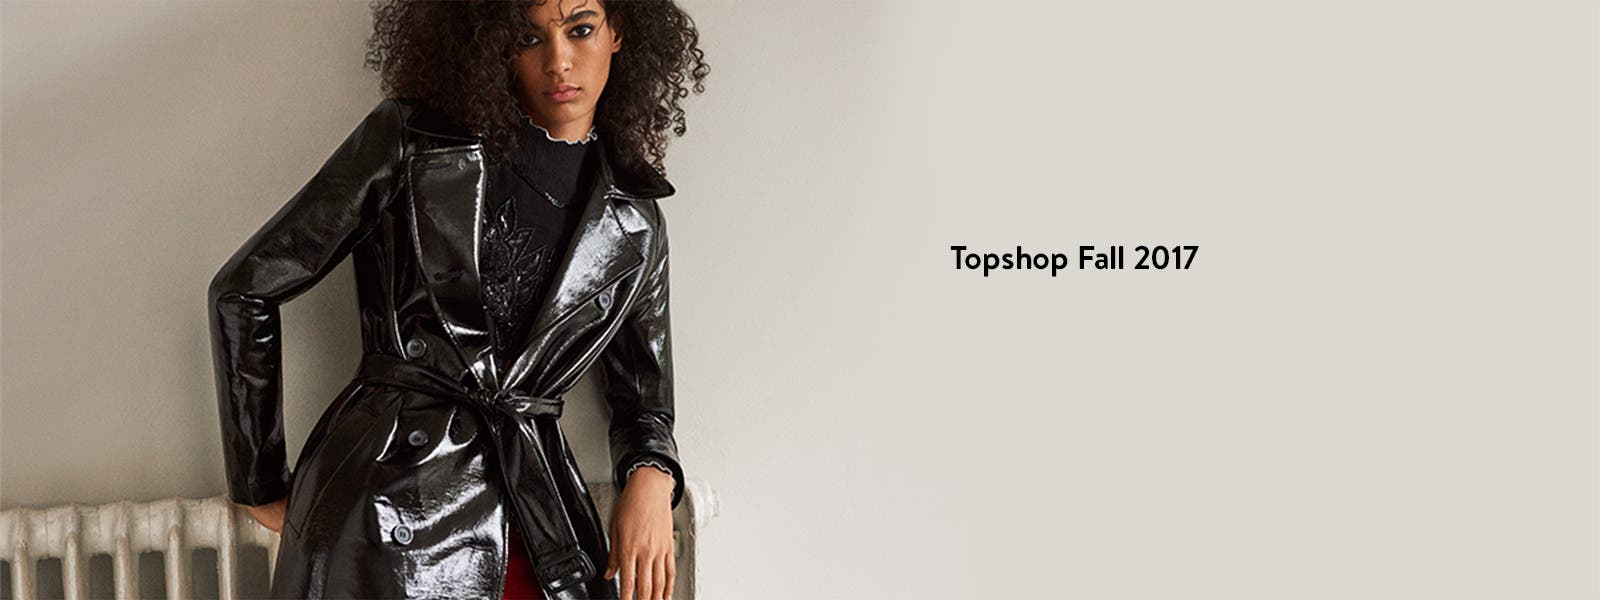 Topshop Fall 2017 clothing.